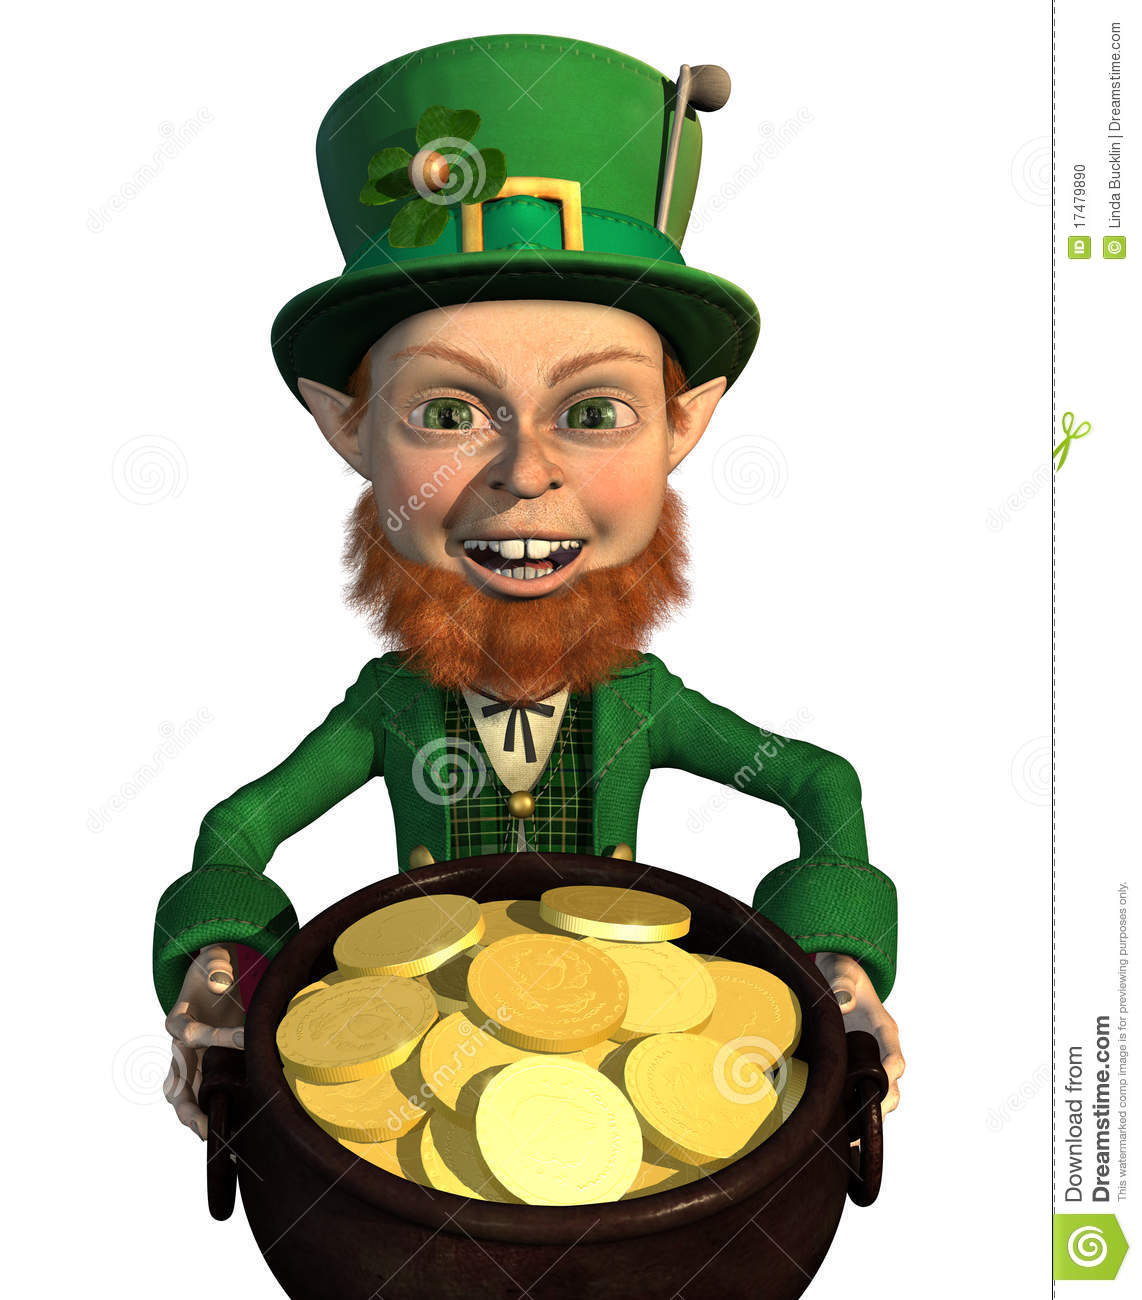 leprechaun finds a pot of gold - he's rich!! 3D render.